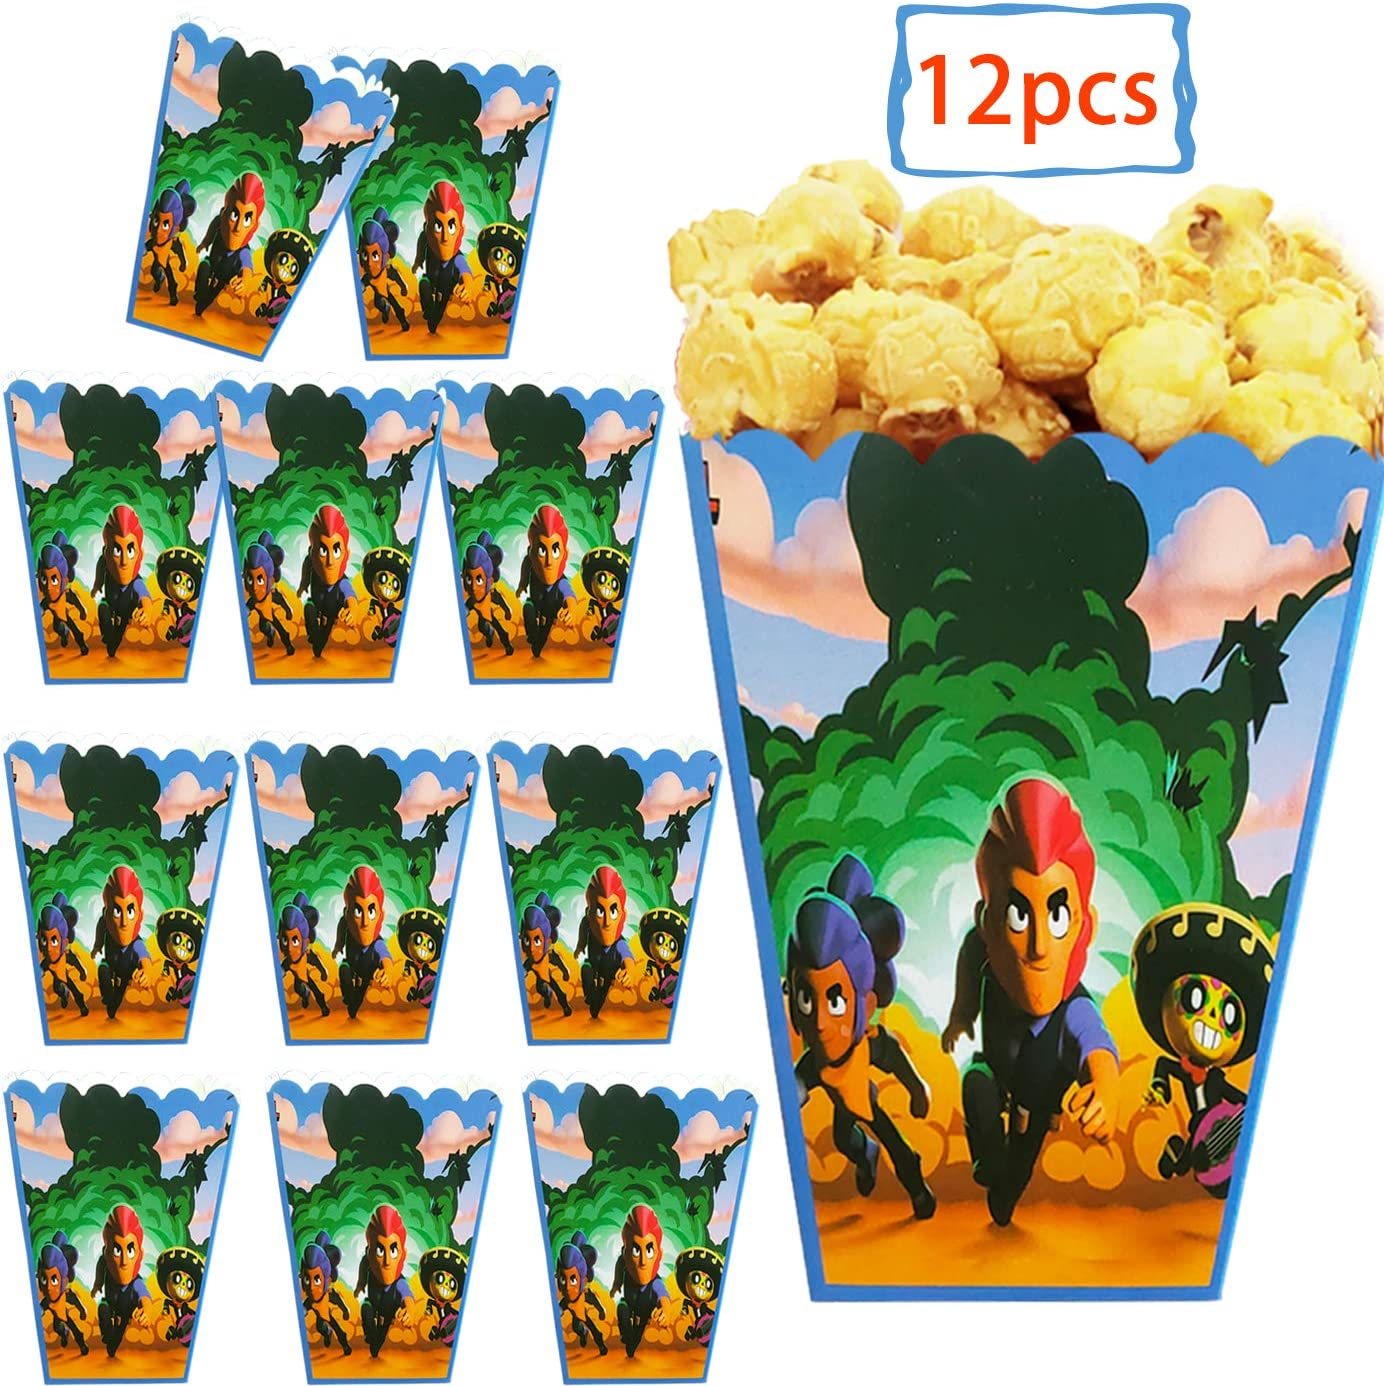 DAWEI 12pcs Brawl Stars Party Popcorn Boxes,Candy Container for Kids Birthday Party Supplies for Brawl Stars Themed